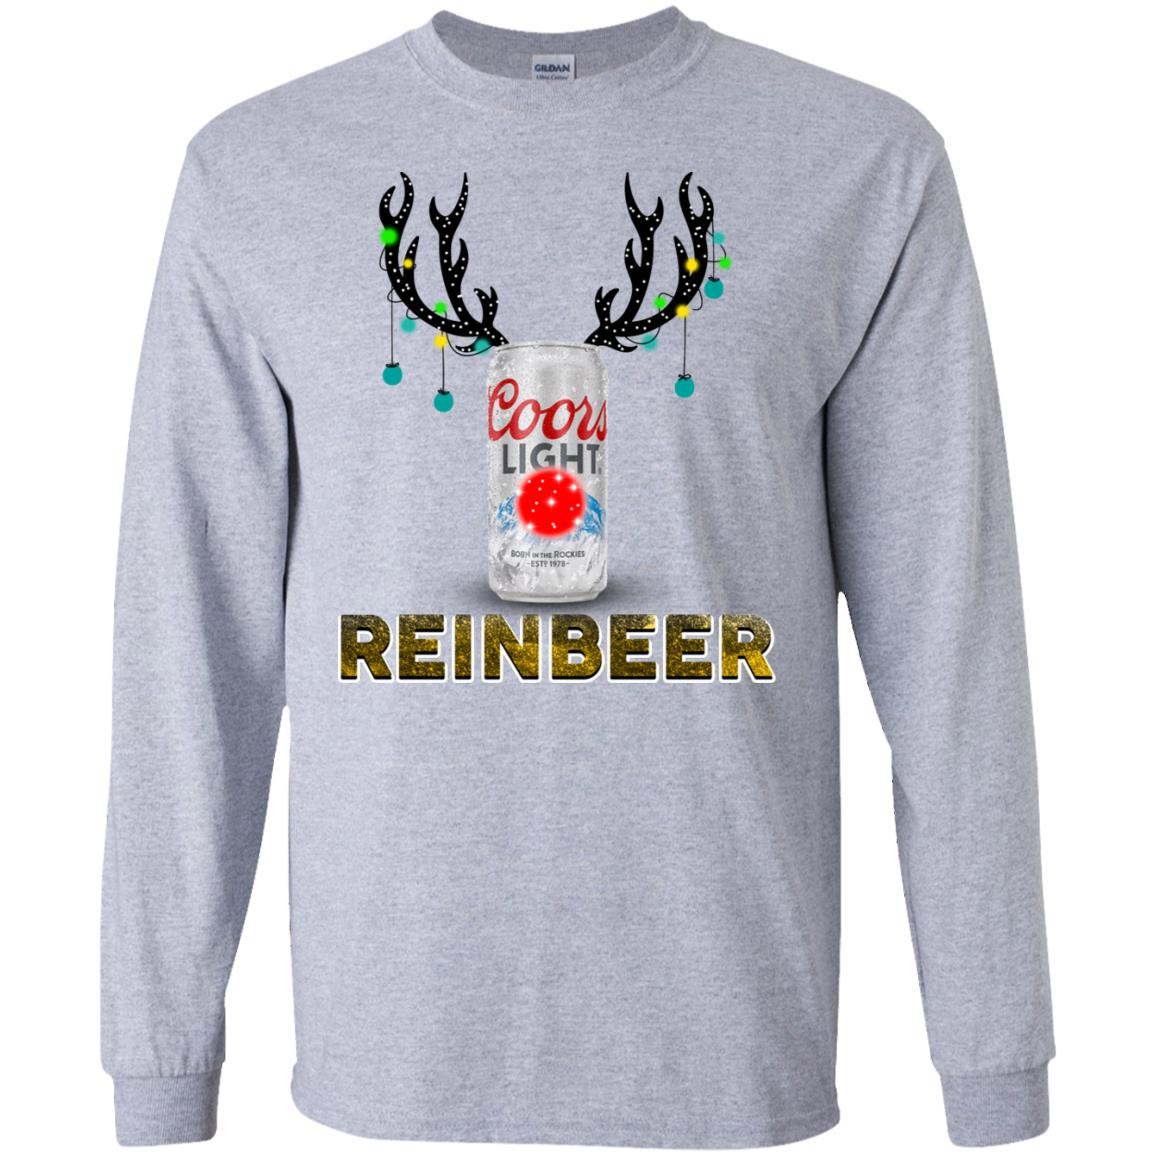 Coors Light Reinbeer Christmas Sweatshirt Hoodie Long Sleeve